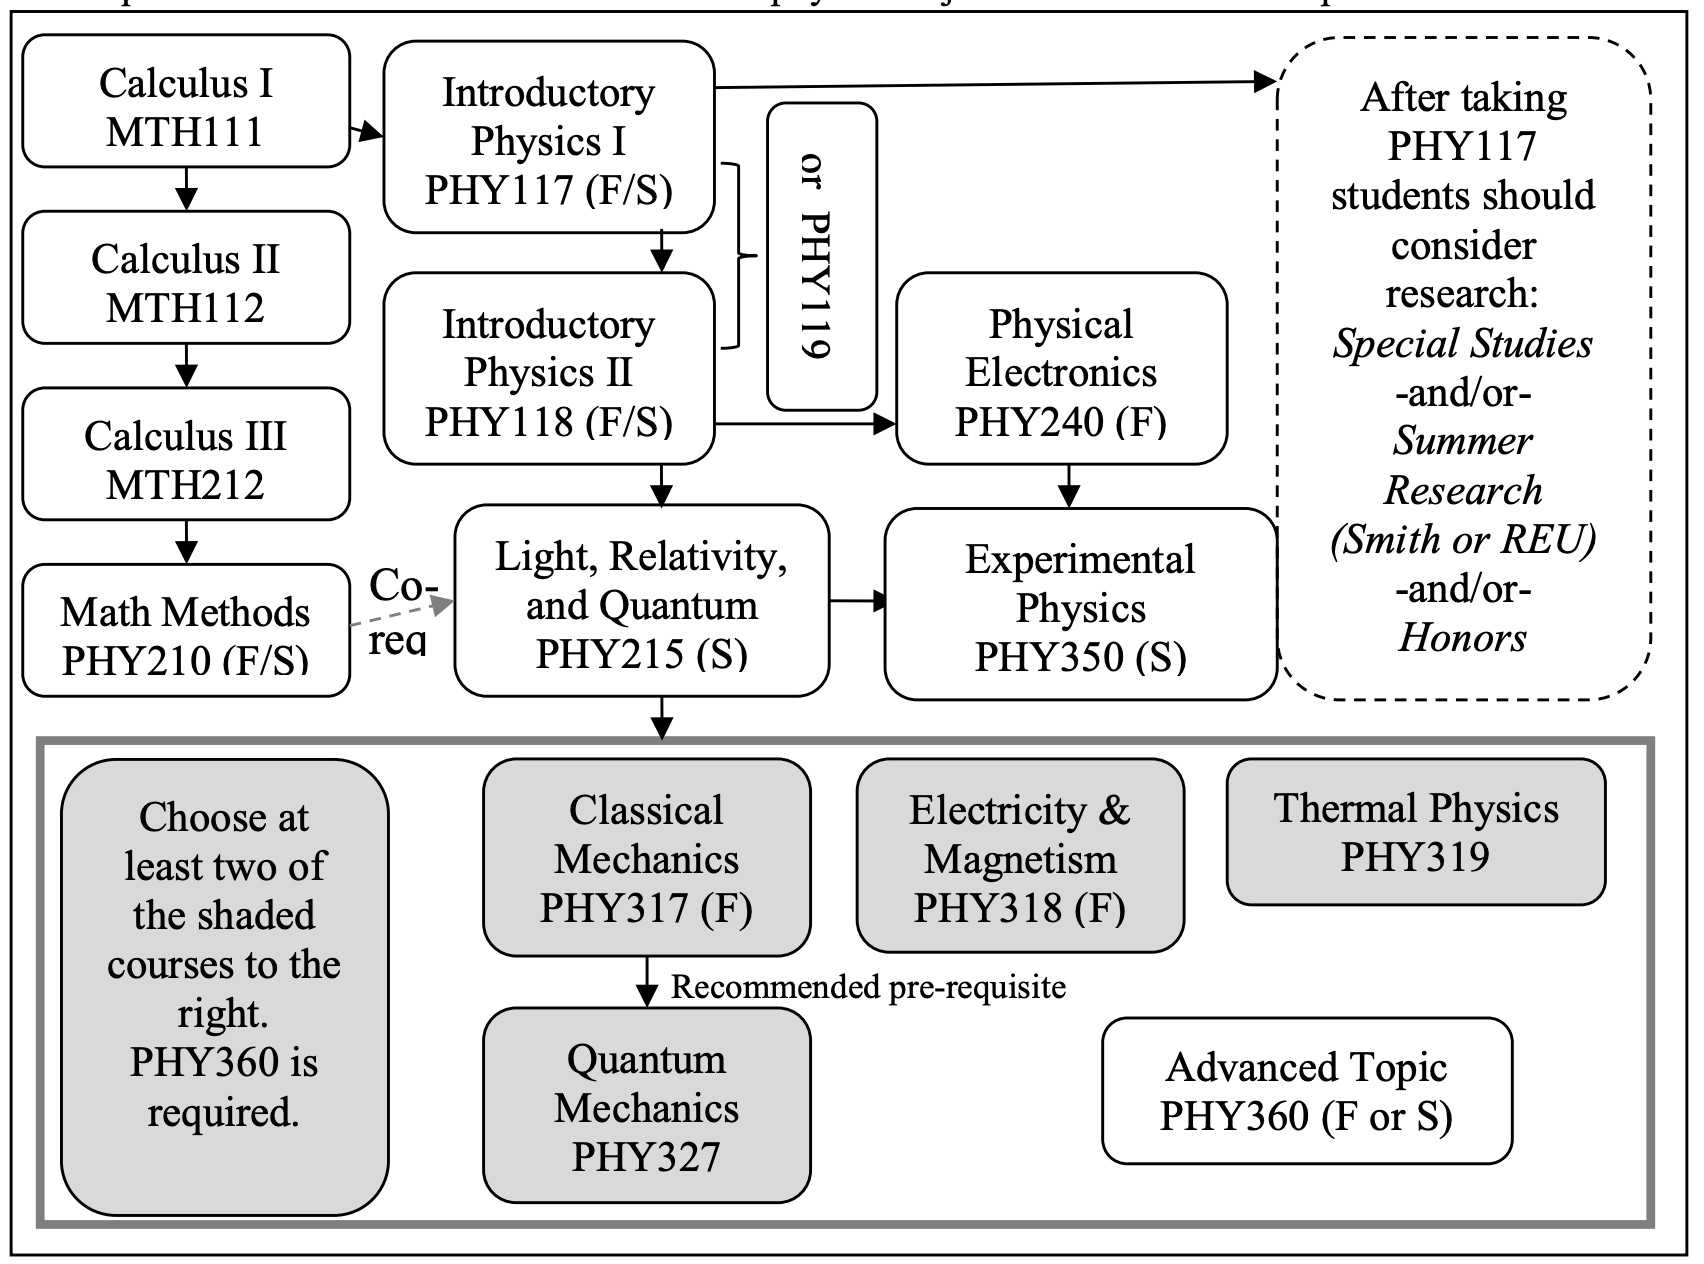 Flow chart for the physics major at Smith College